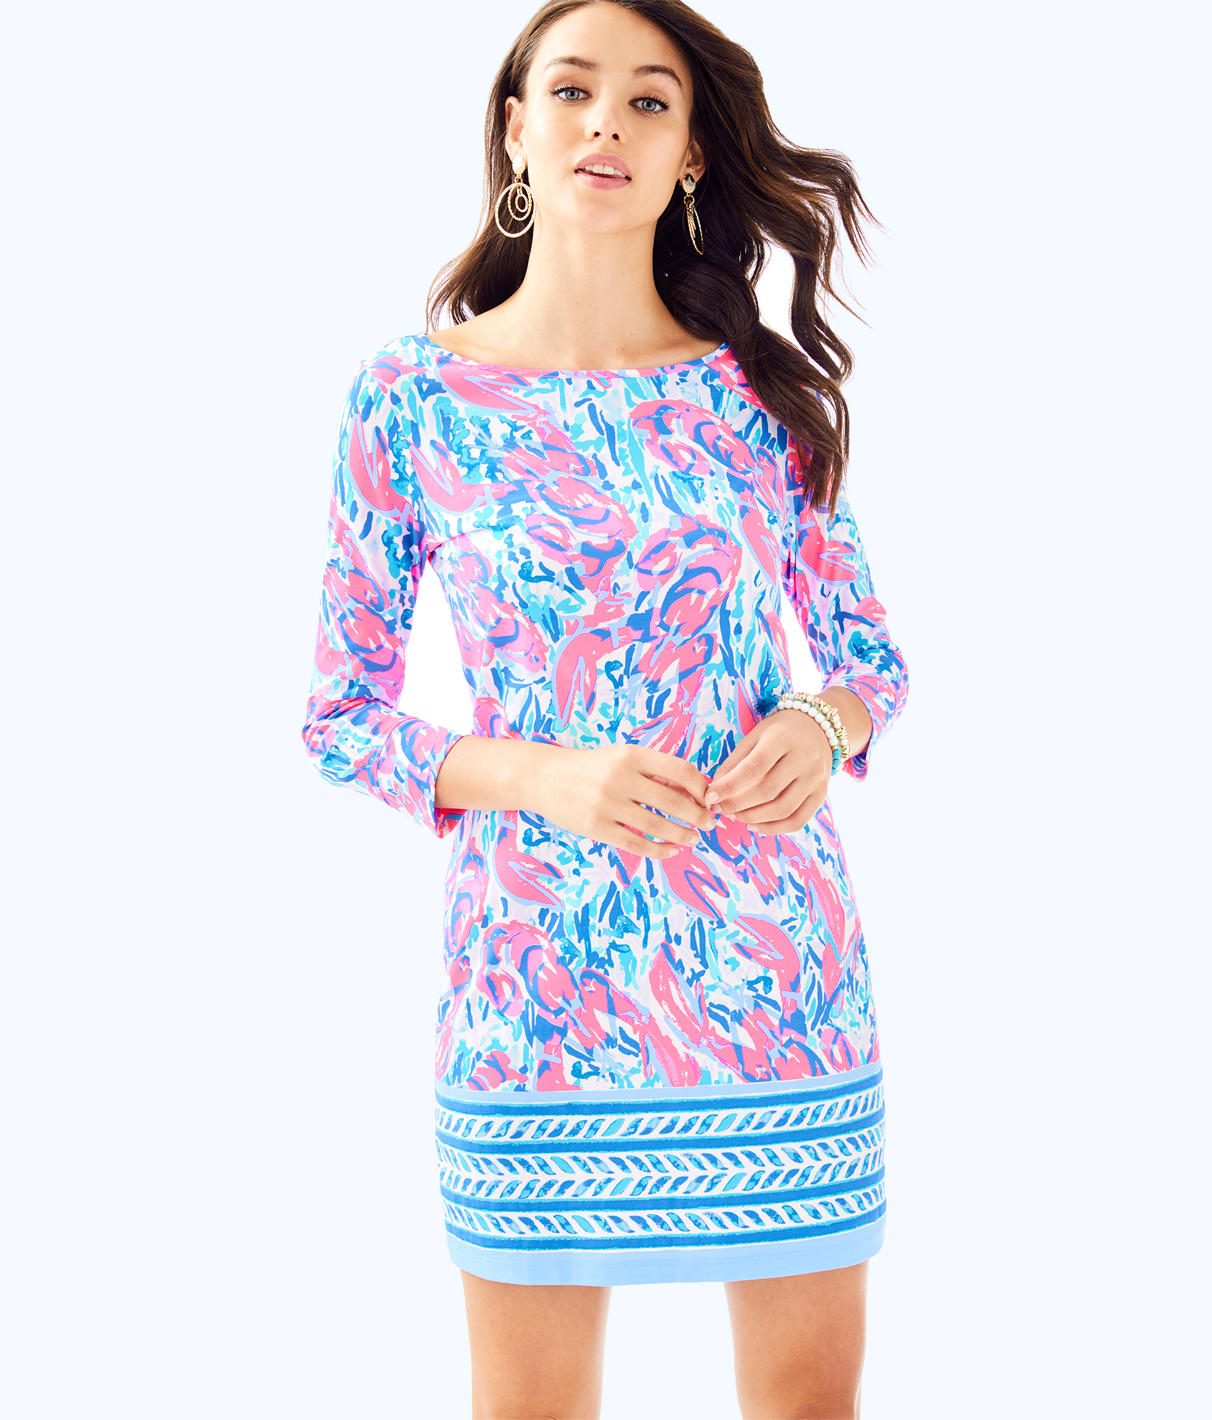 Lilly Pulitzer Lilly Pulitzer Womens Marlowe Boatneck T-Shirt Dress